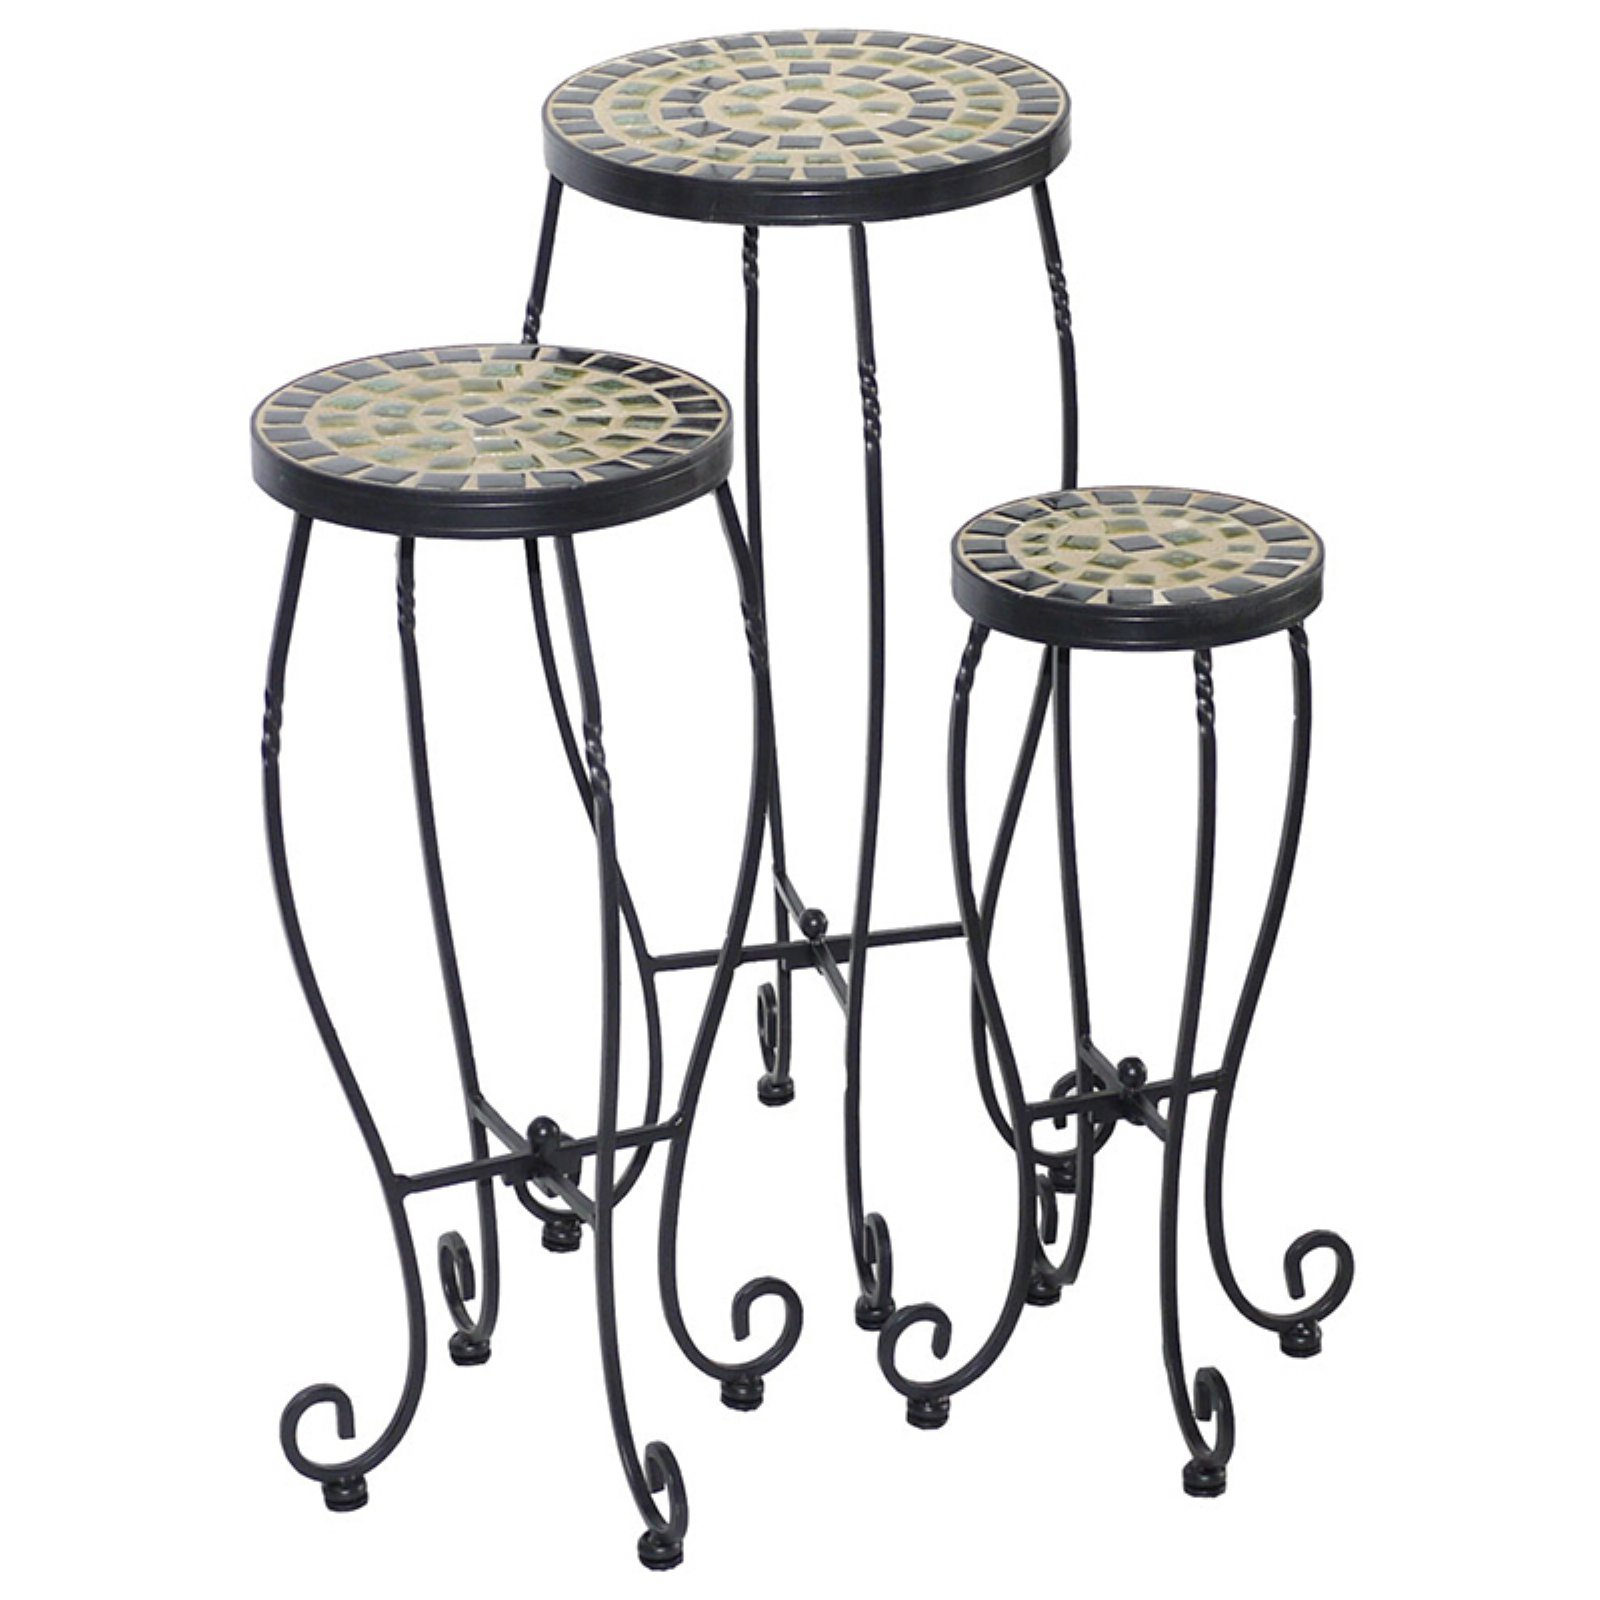 Alfresco Home Shannon Plant Stands Set of 3 by Plant Stands